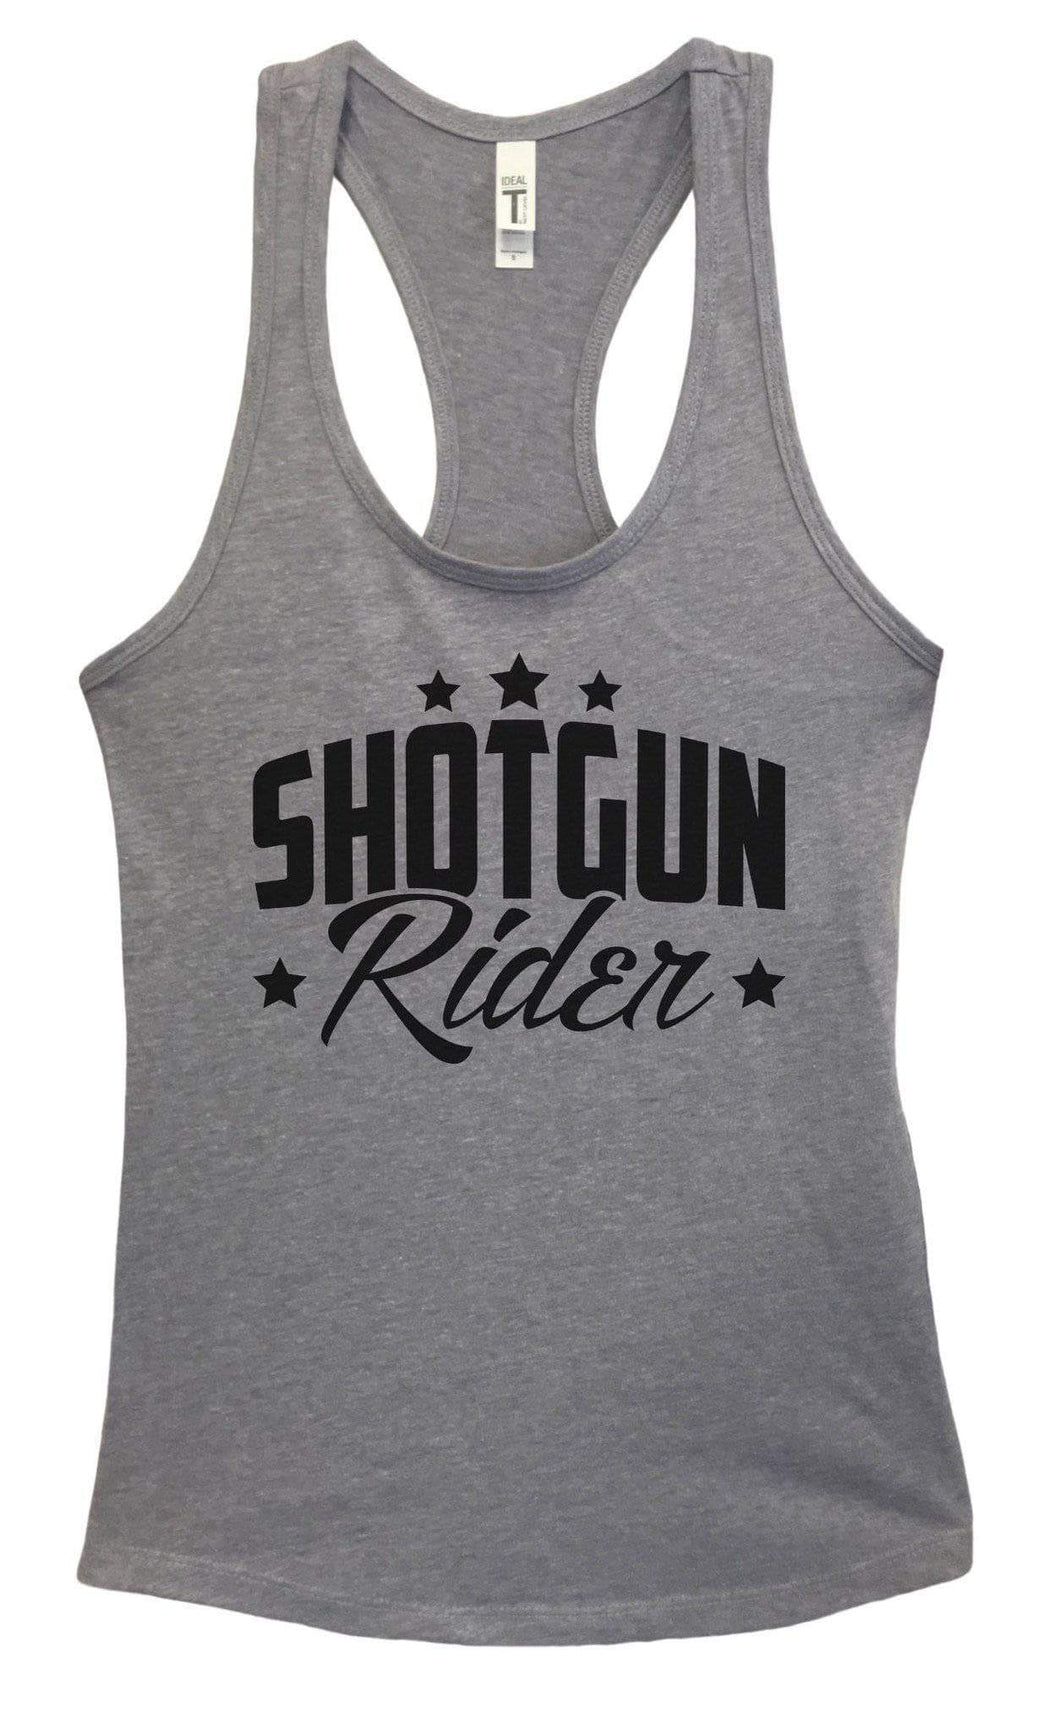 Womens Shotgun Rider Grapahic Design Fitted Tank Top Small Womens Tank Tops Heather Grey